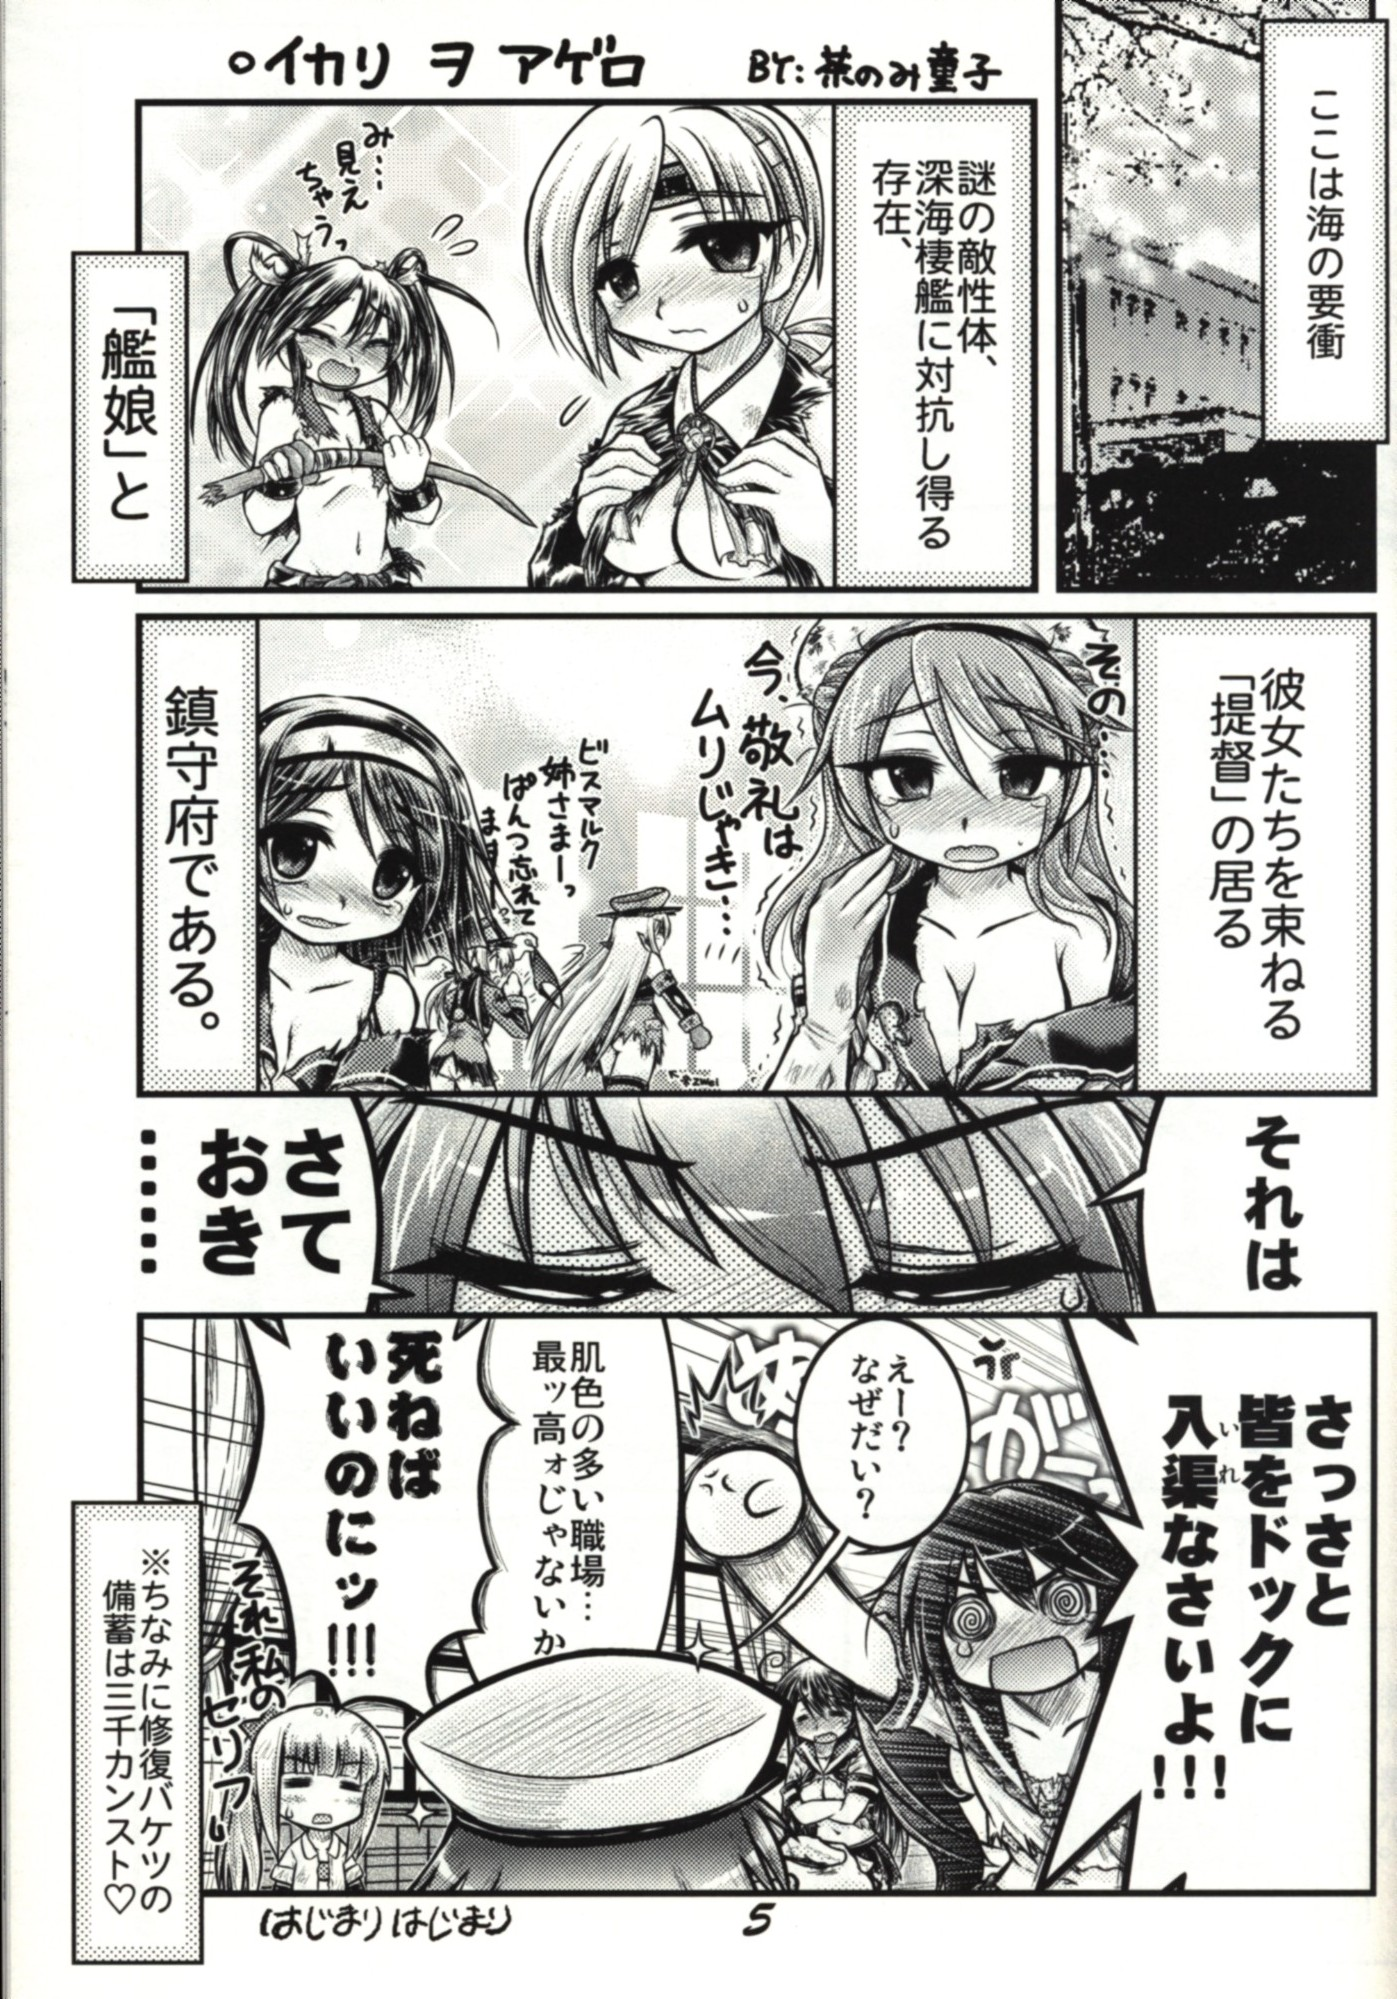 Doujinshi - Kantai Collection / Akebono (Kan Colle) (くちくべいべ−) / CHA-CHA GUMI